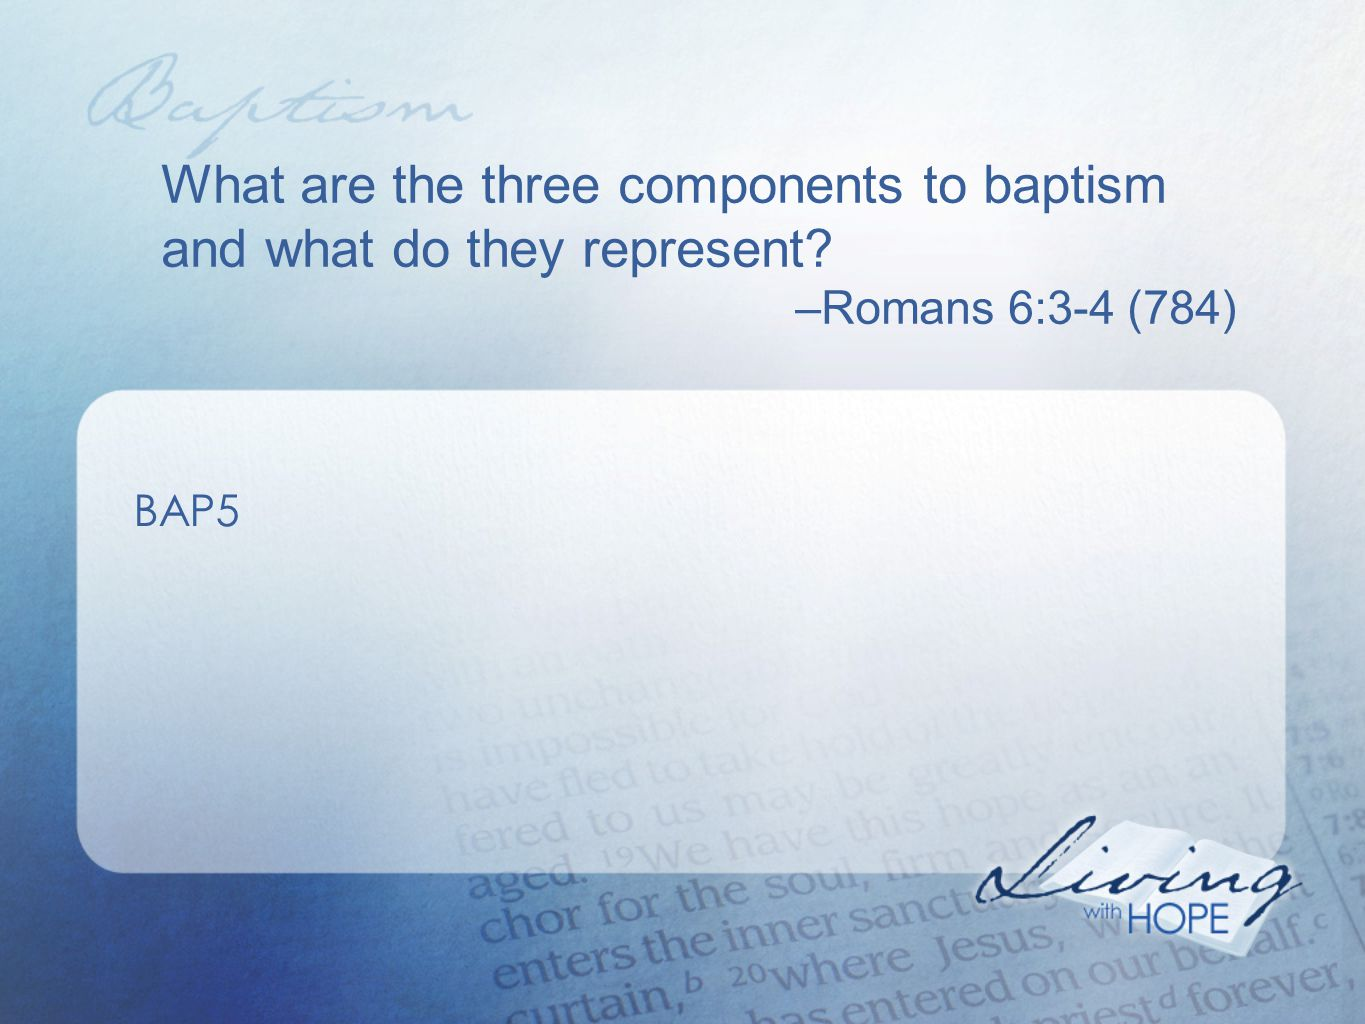 What are the three components to baptism and what do they represent? –Romans 6:3-4 (784) BAP5